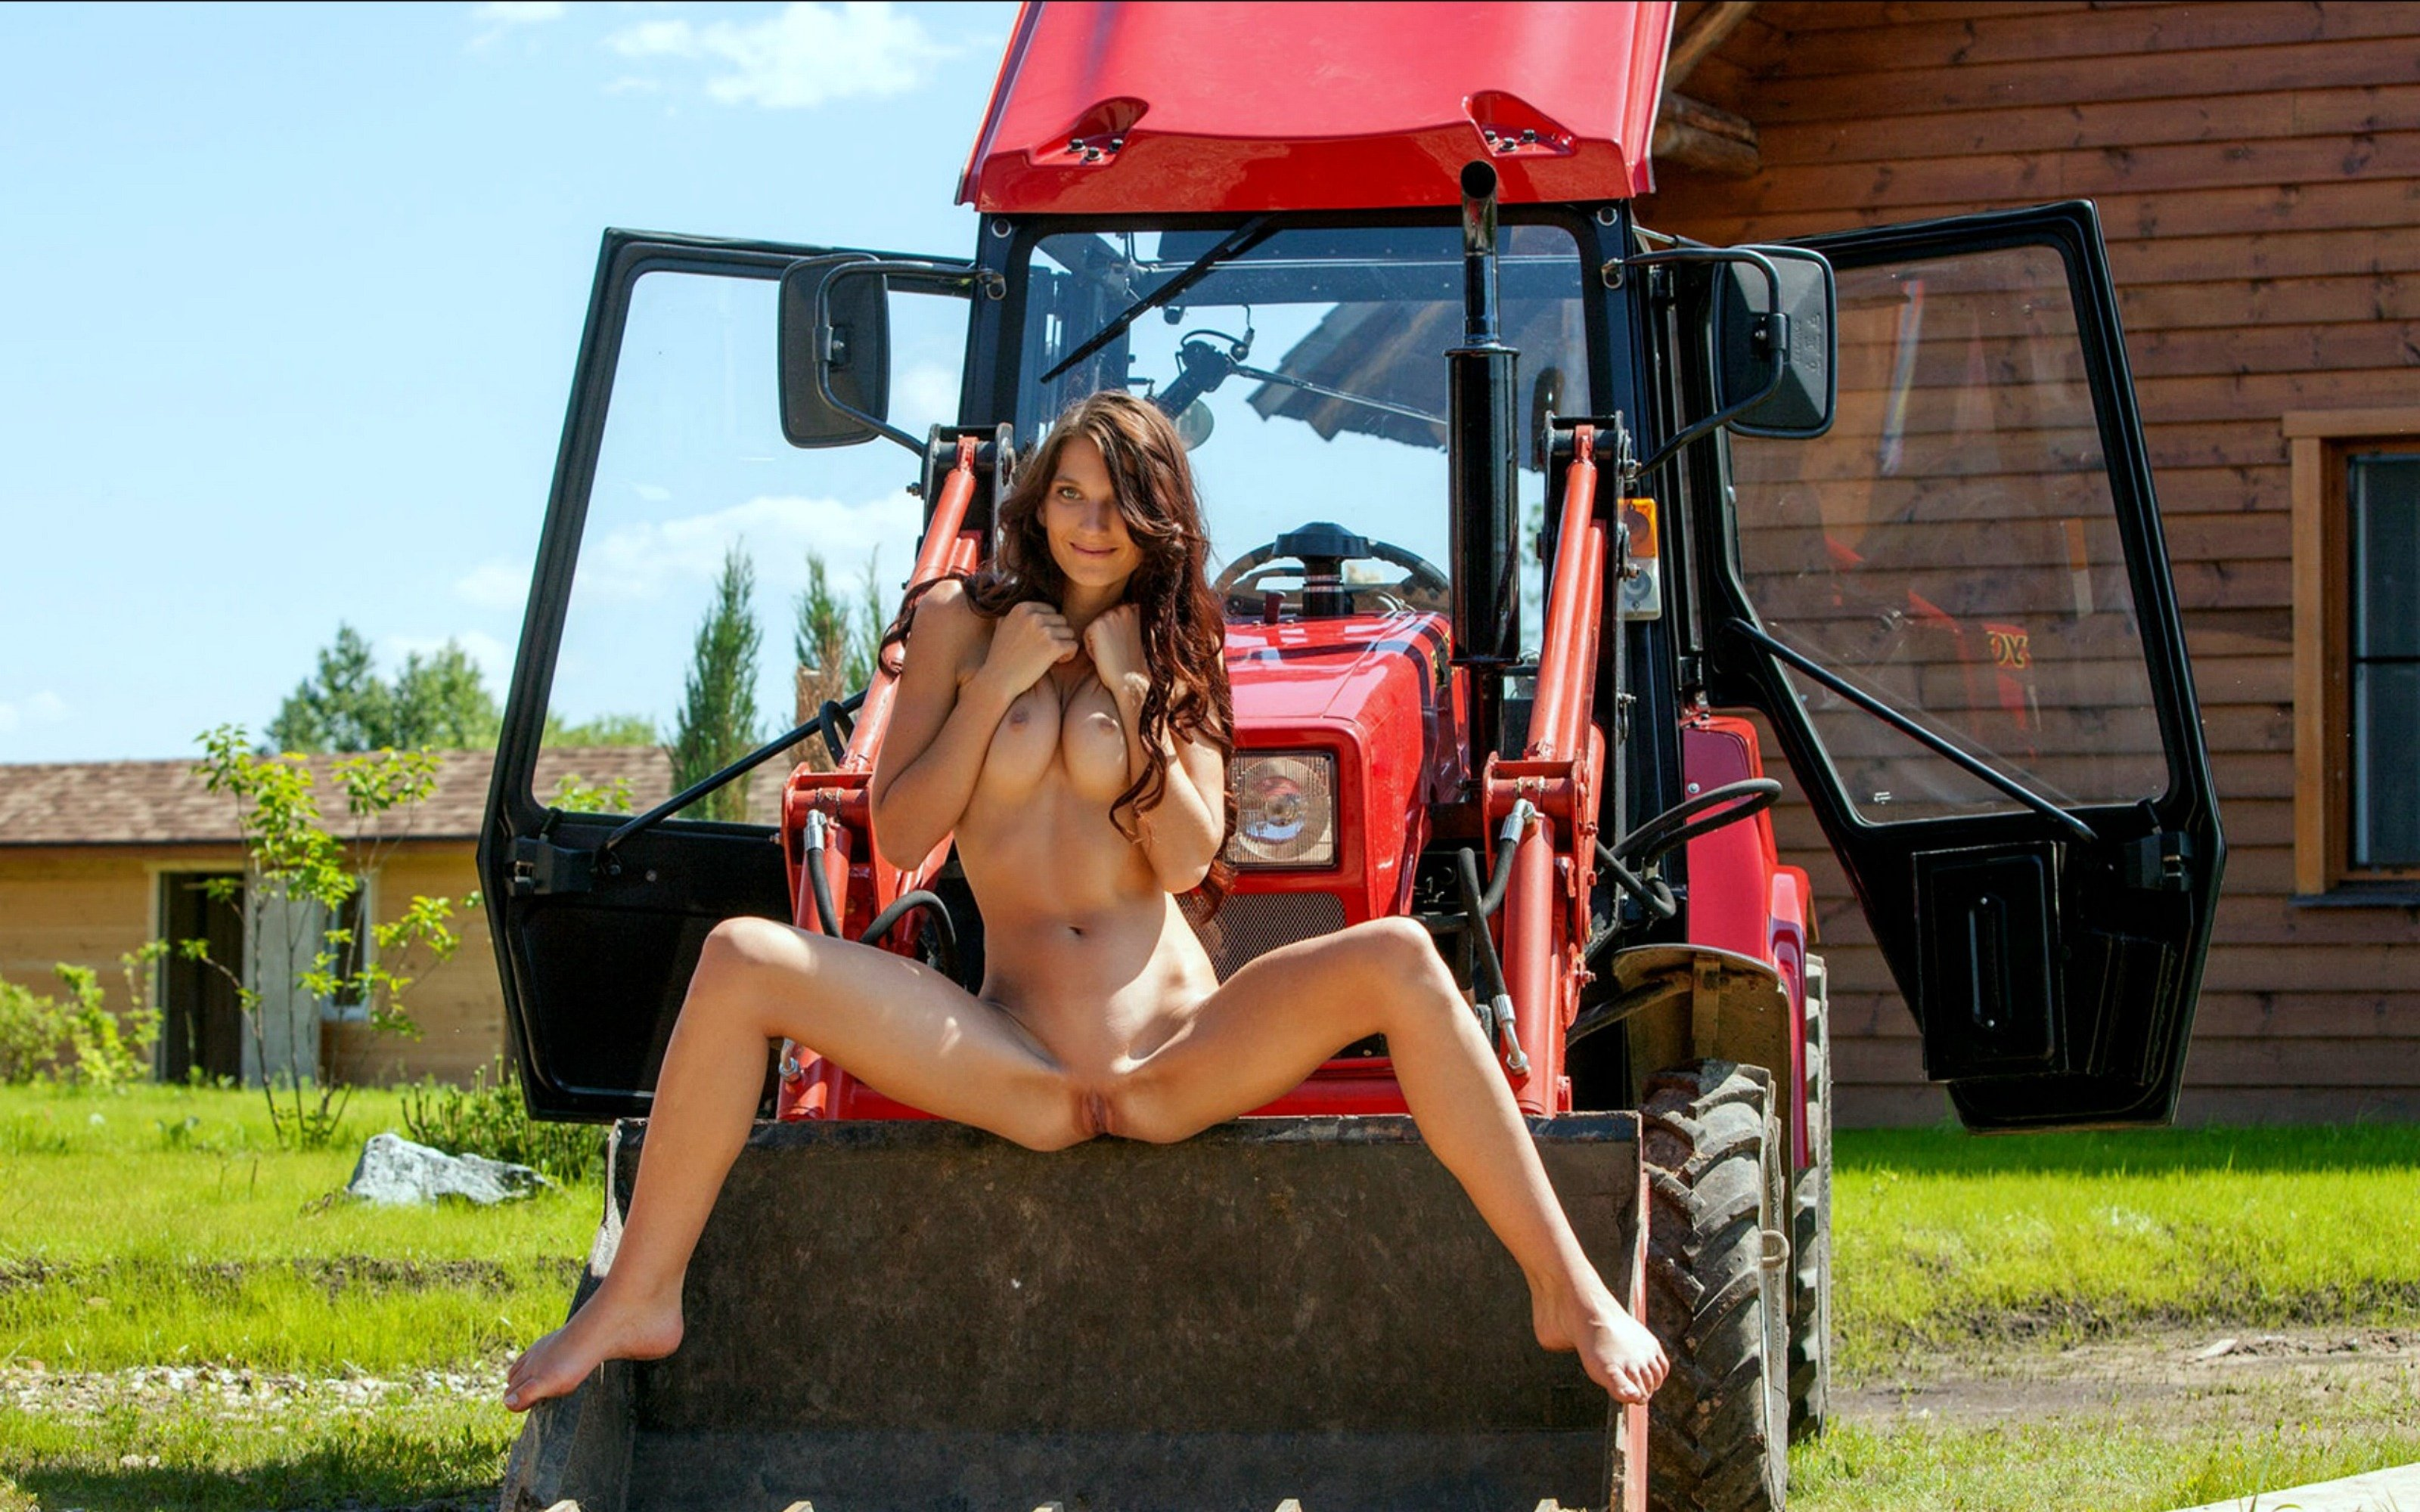 horny-wet-girl-masrerbates-on-tractor